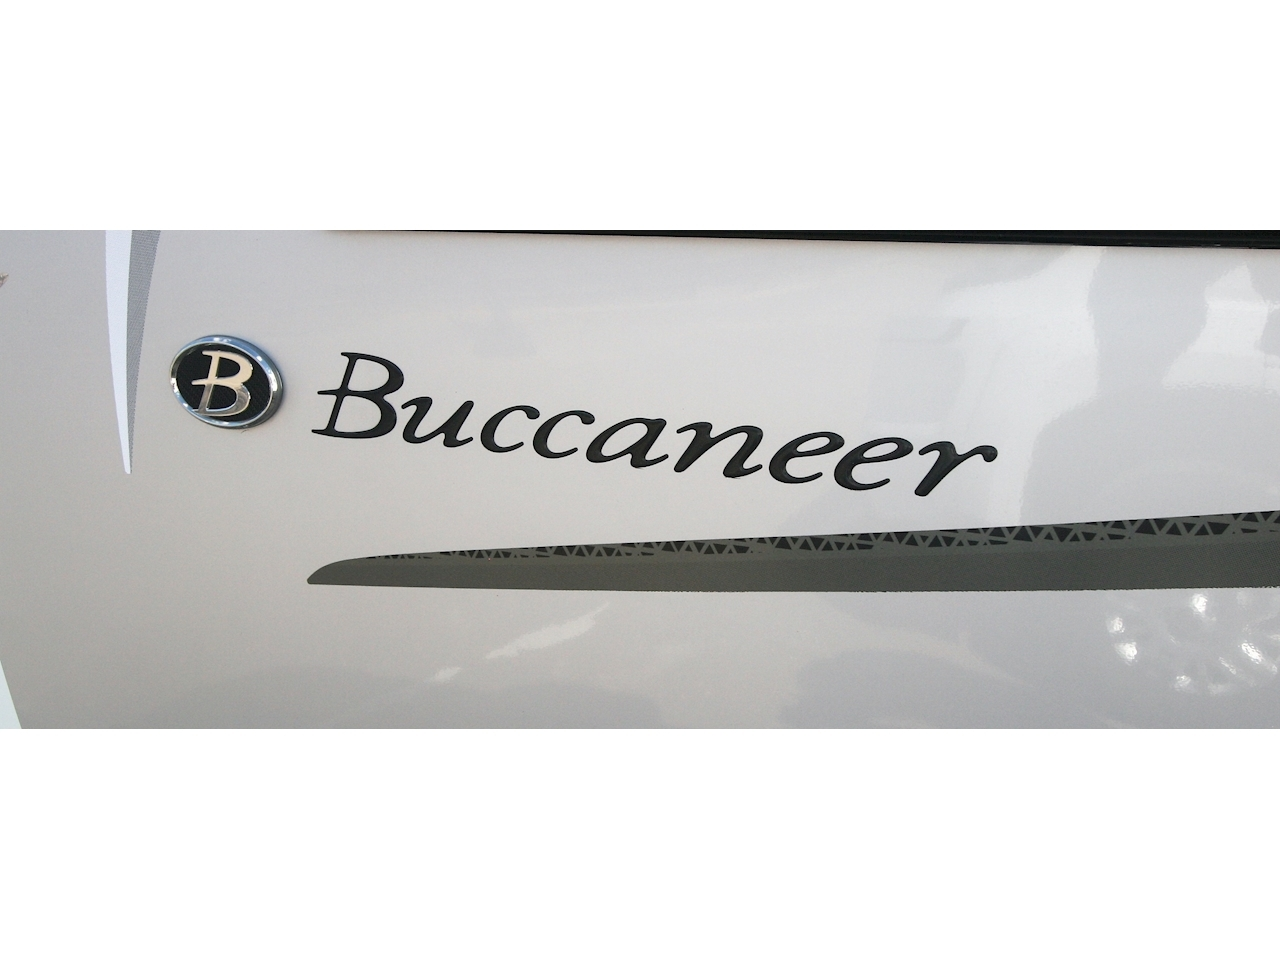 Bucanner Cruiser - Large 11